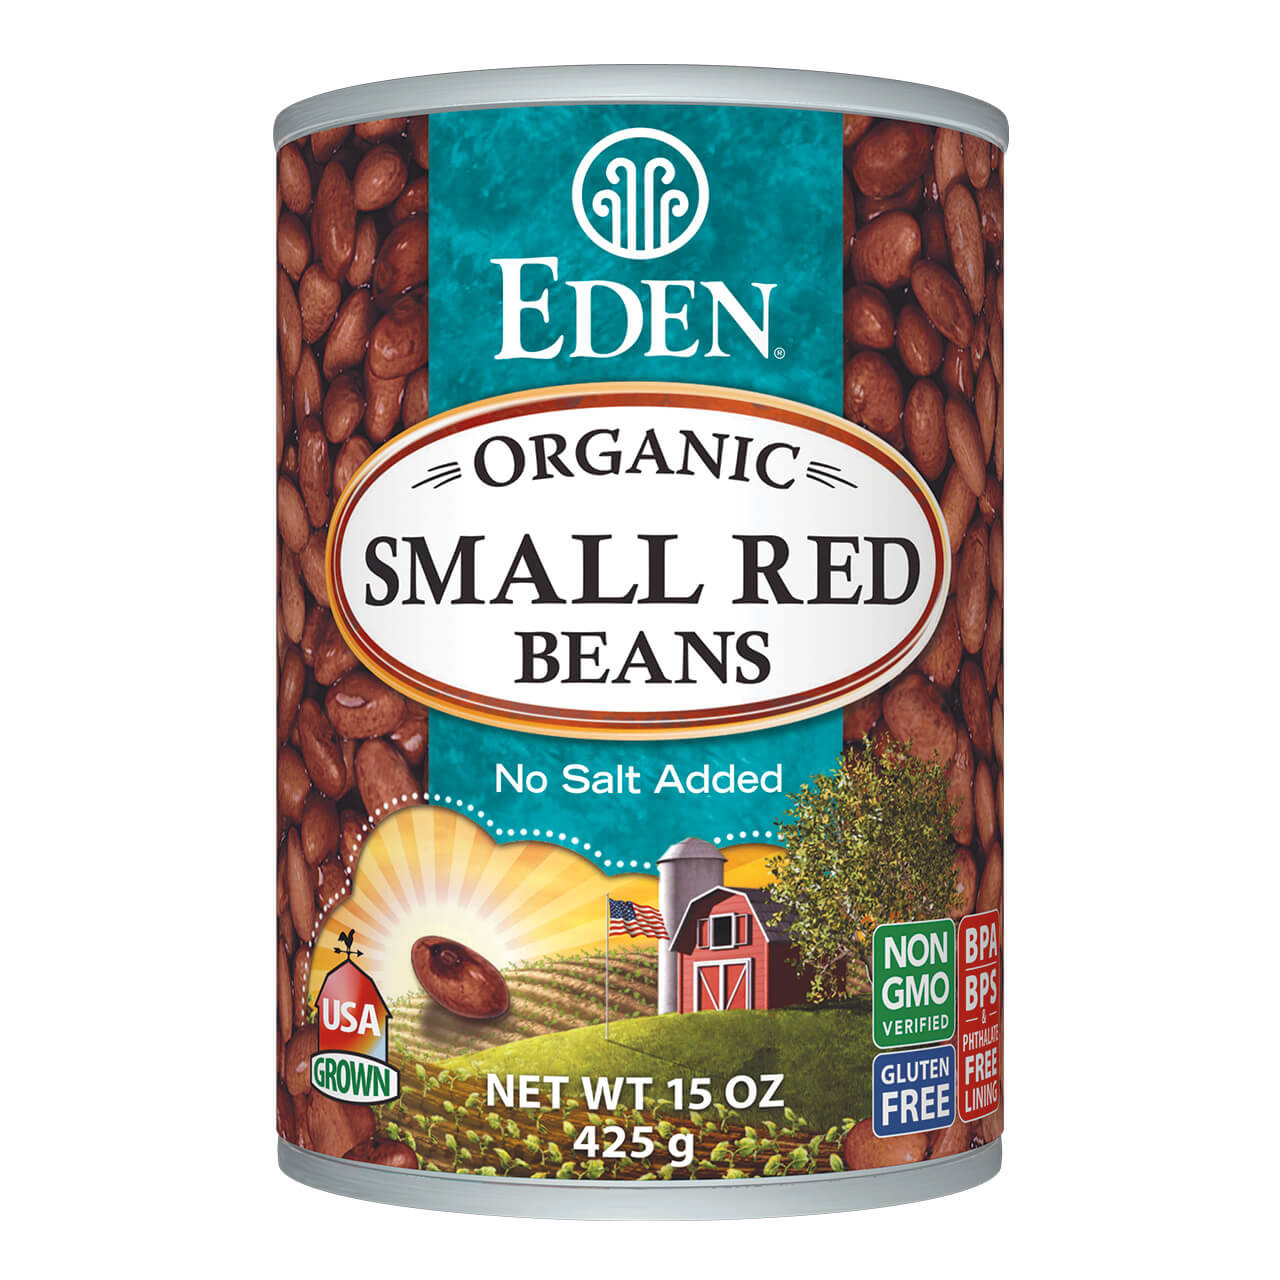 Small Red Beans, organic, 15 oz